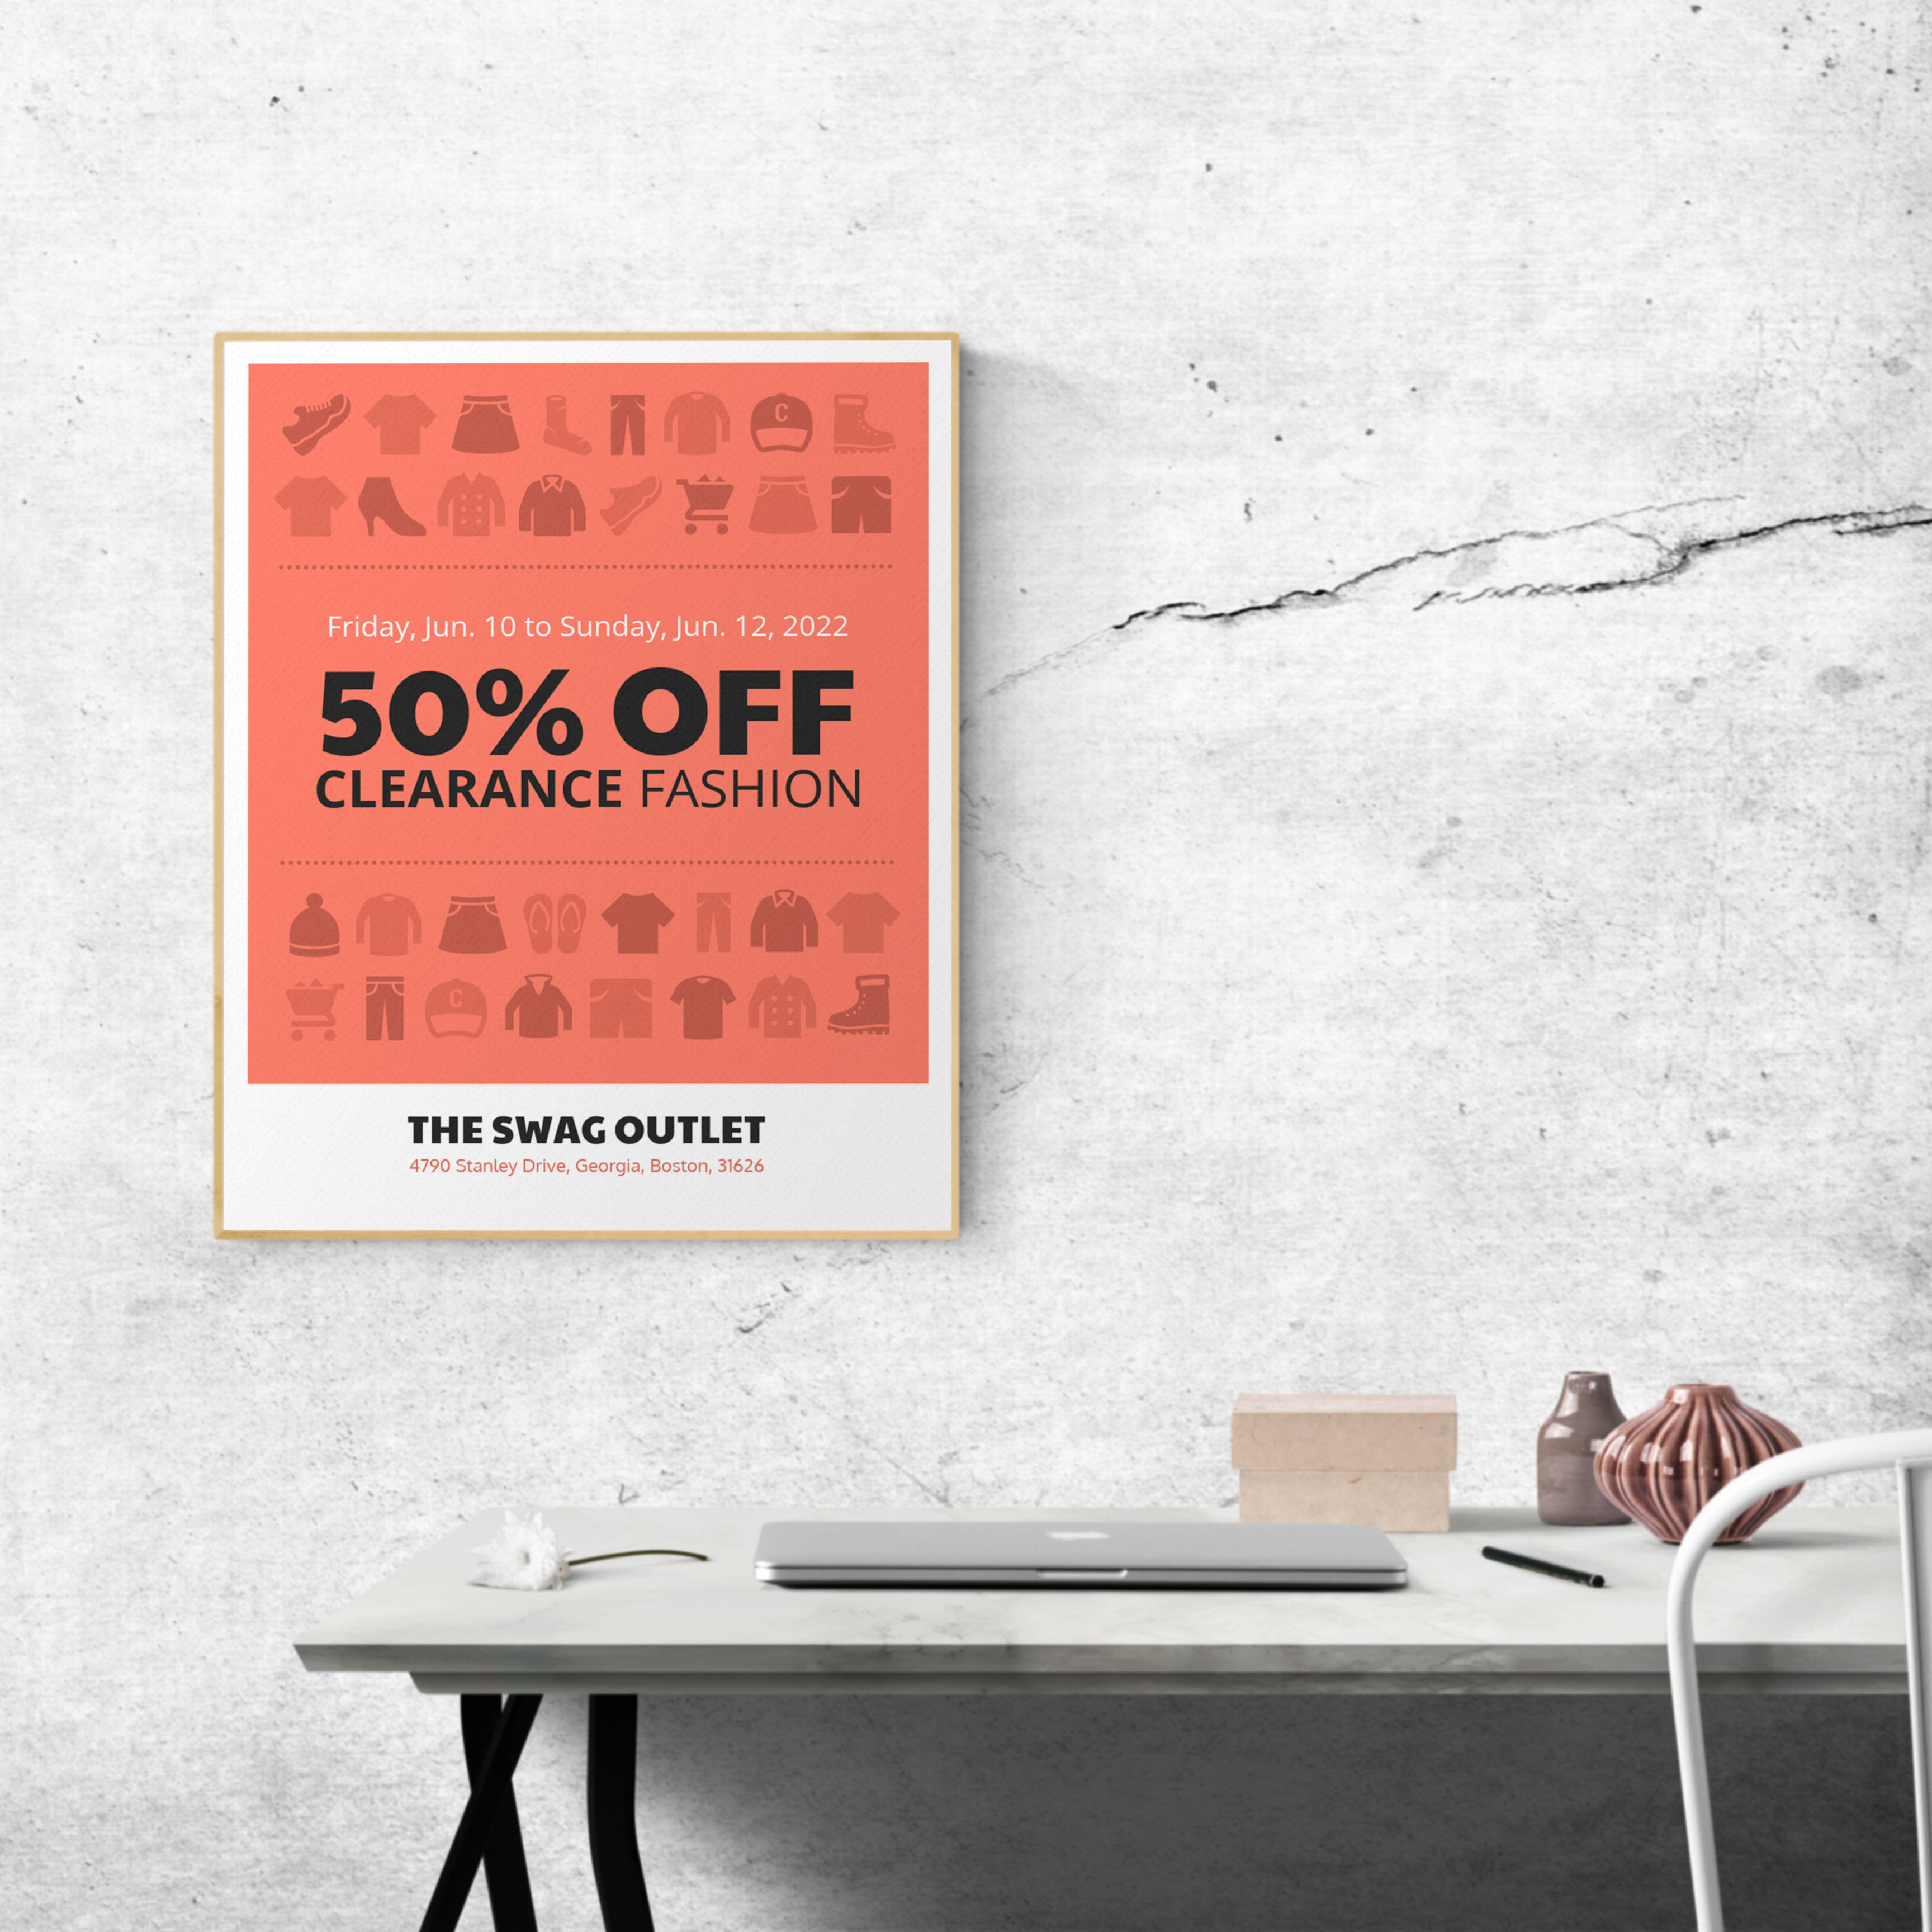 Product Flyer Templates Examples Tips9